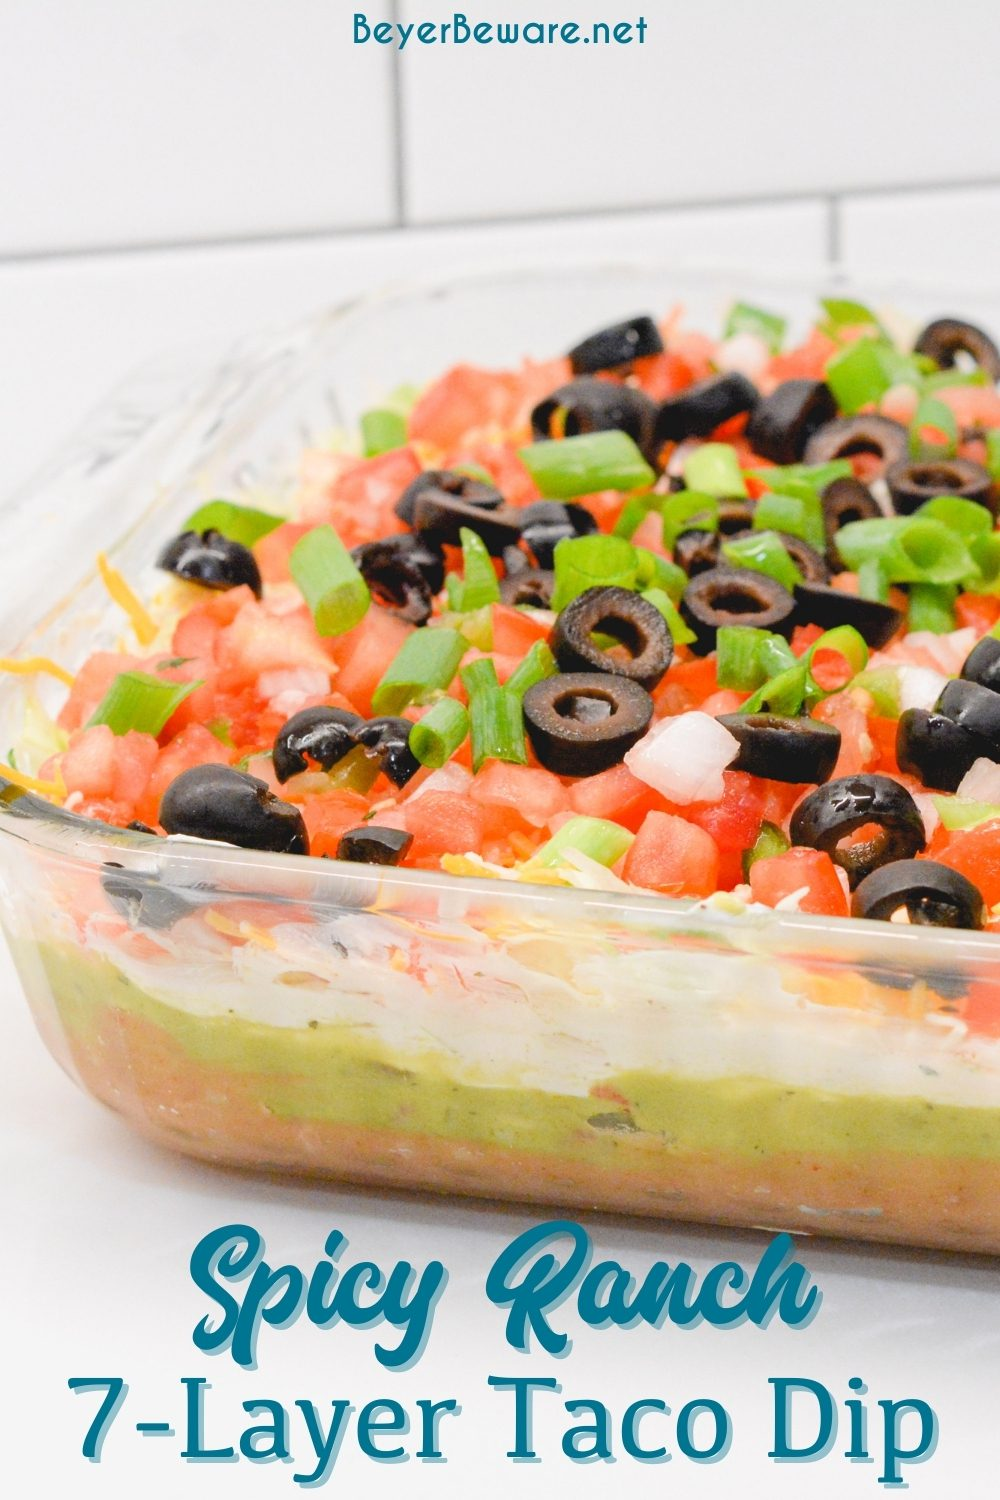 Spicy ranch 7-layer taco dip is Layers of taco-seasoned refried beans, guacamole, sour cream with ranch, lettuce, cheese, pico de gallo, olive, and cheese!